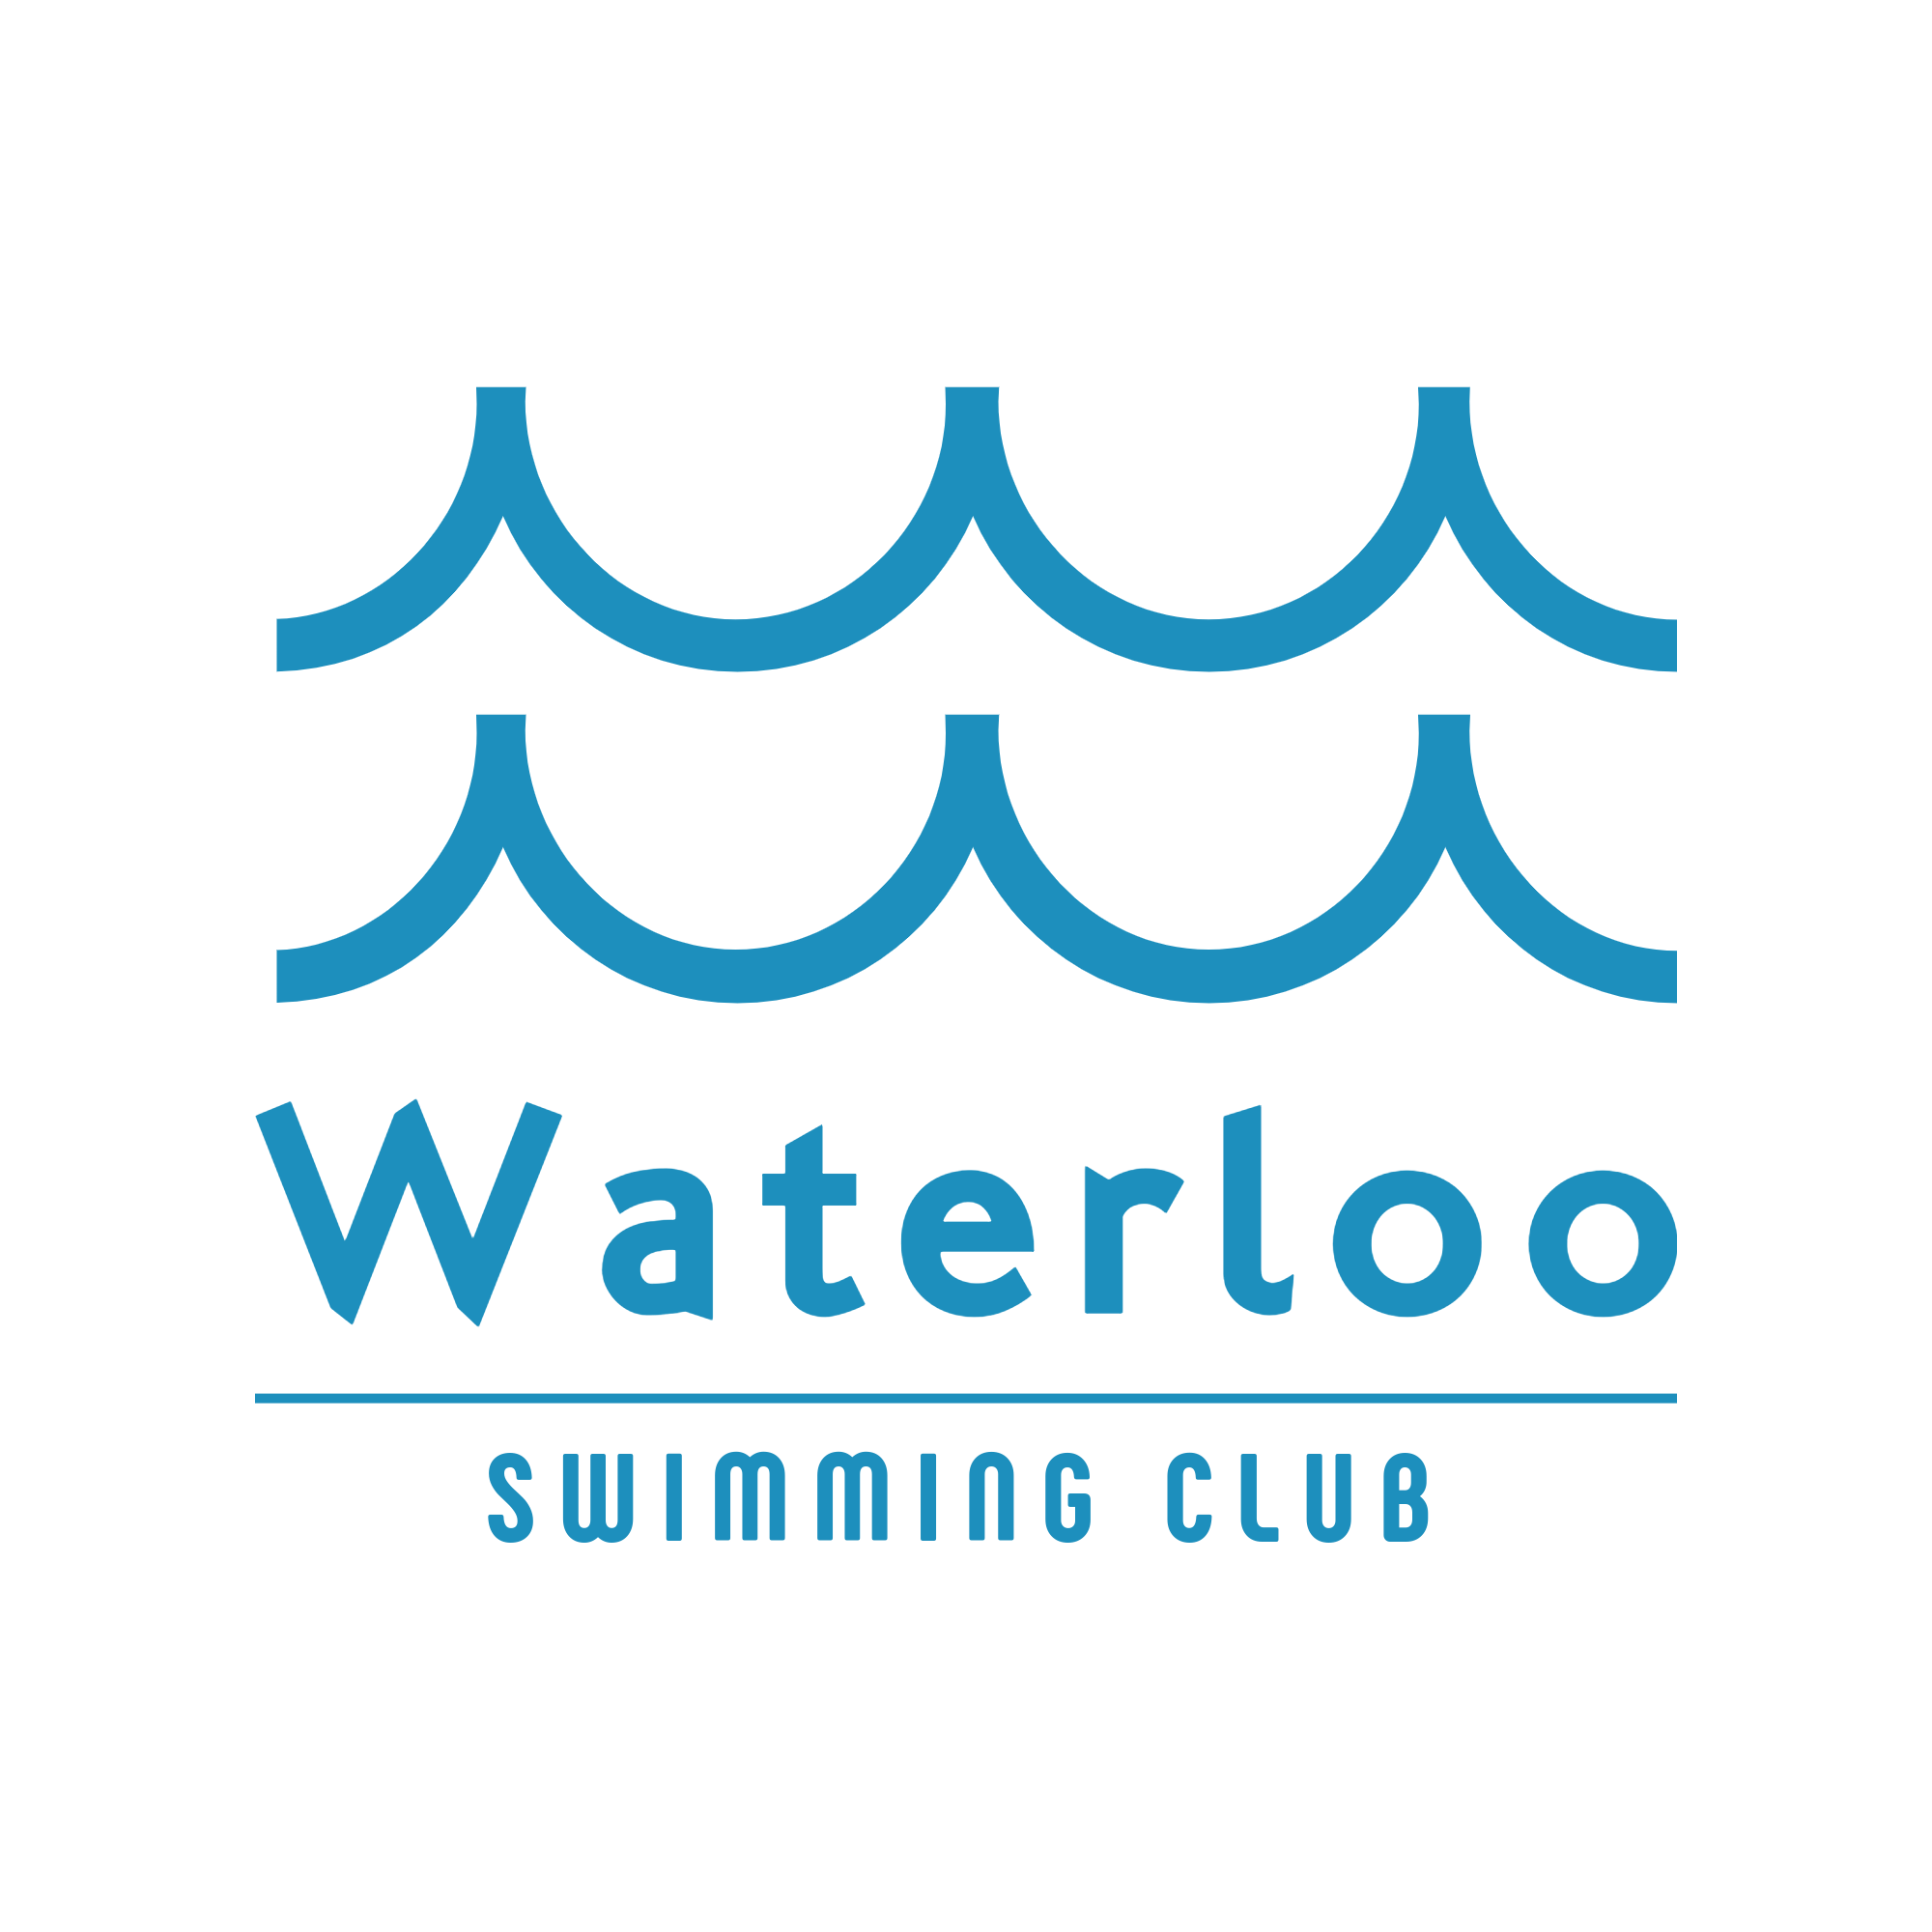 Waterloo Swimming Club Logaster logo